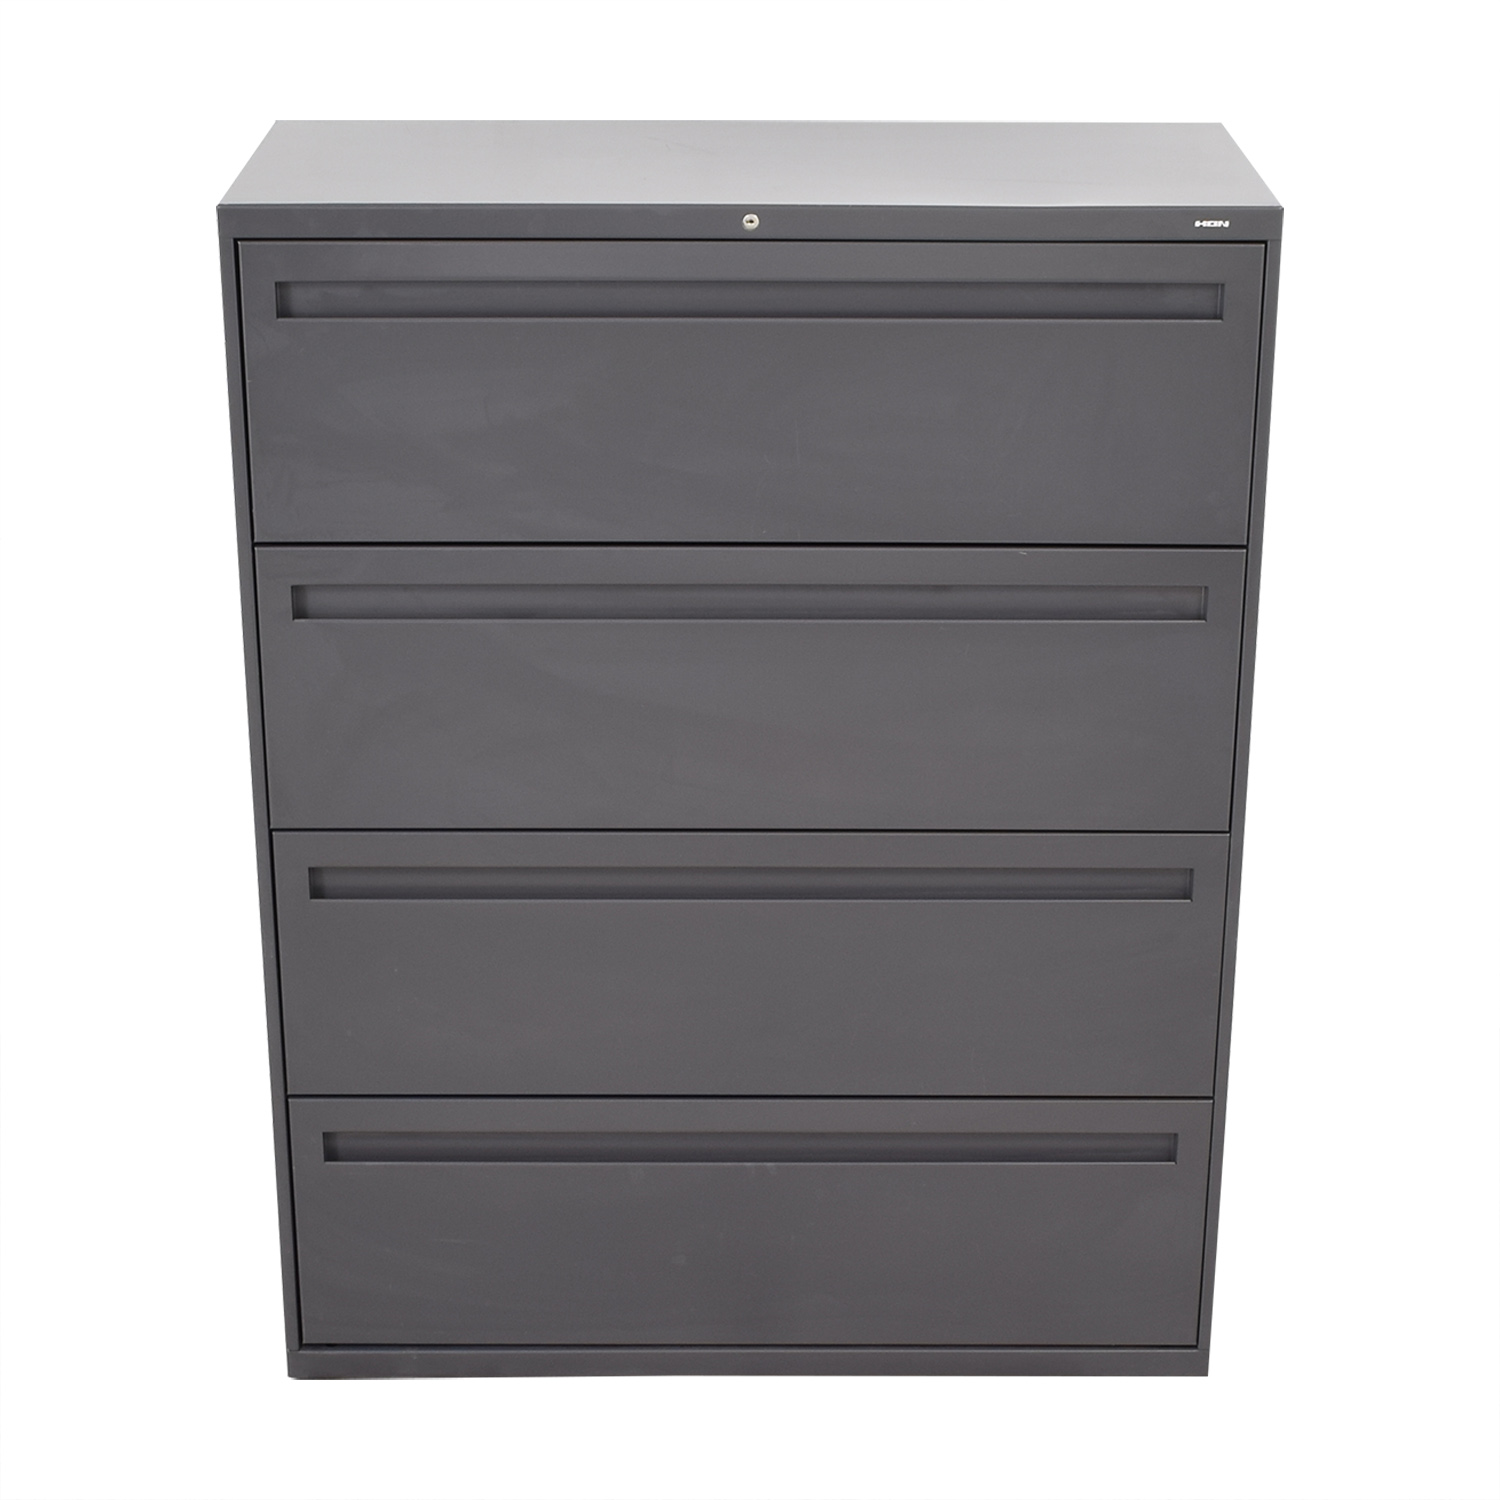 Hon 4-Drawer Lateral Filing Cabinet / Storage